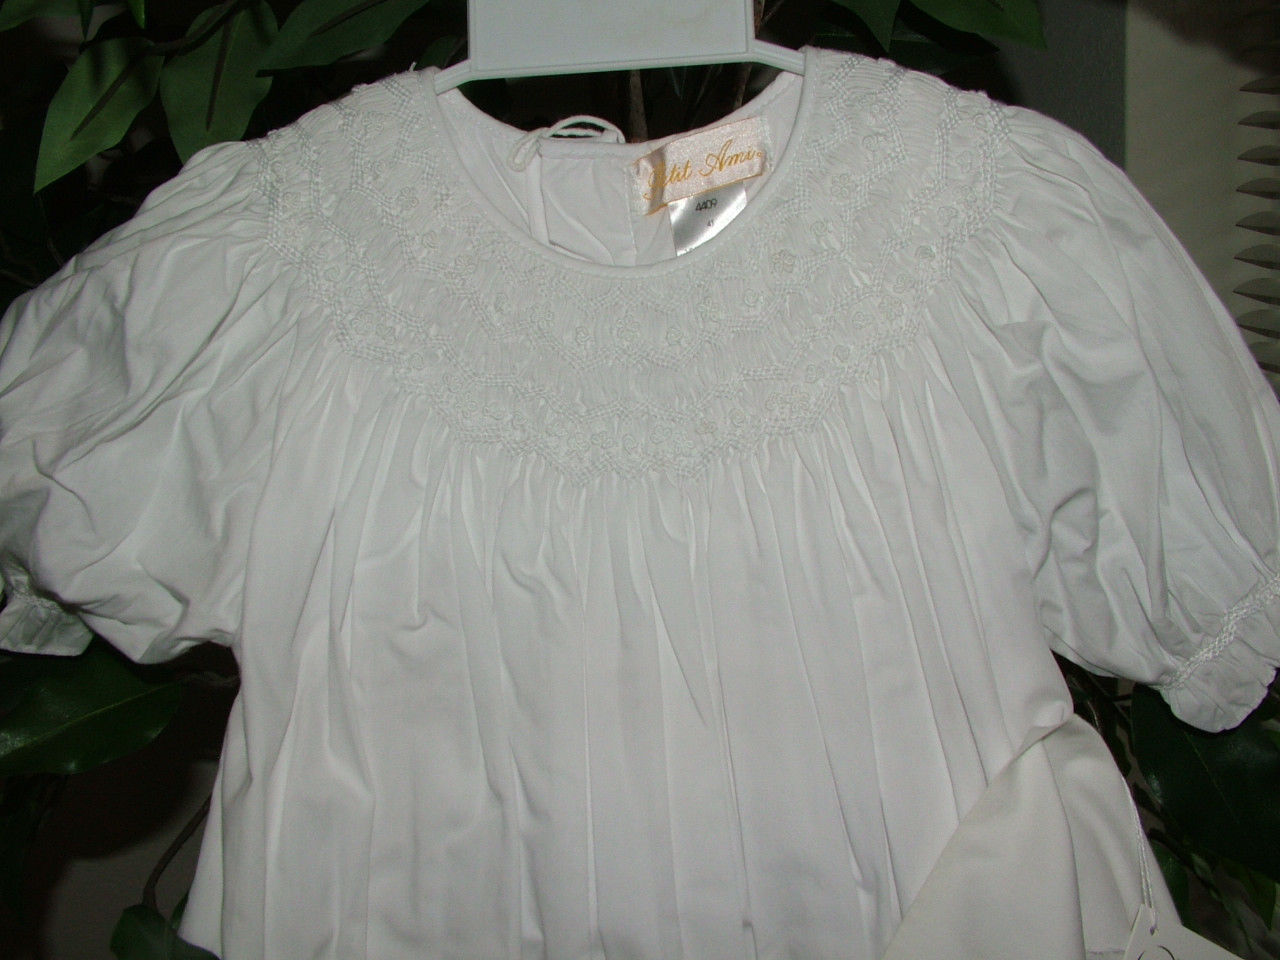 Image 5 of Gorgeous Petit Ami White Heirloom Boutique Lined Party Dress, Wedding - White -